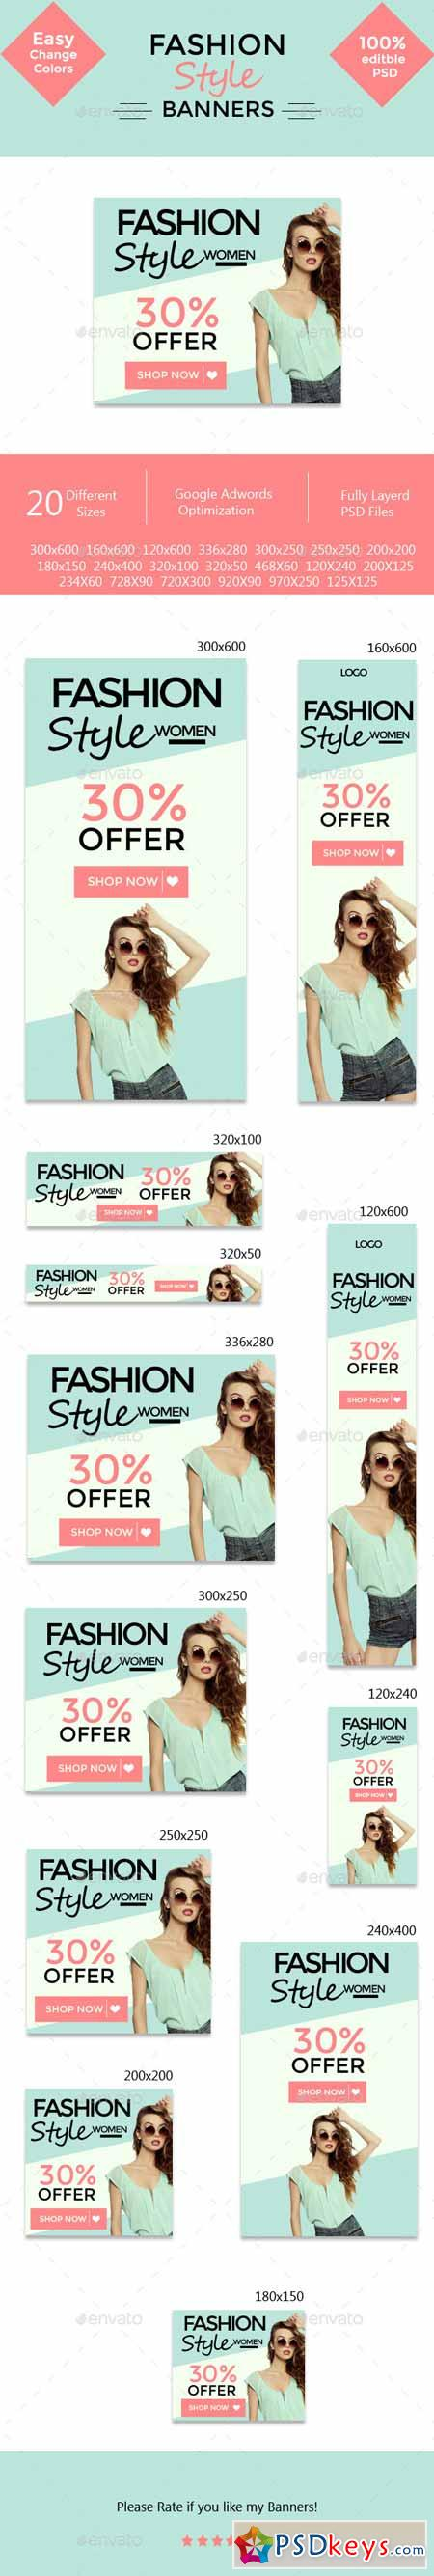 Fashion Style Banners 11322292